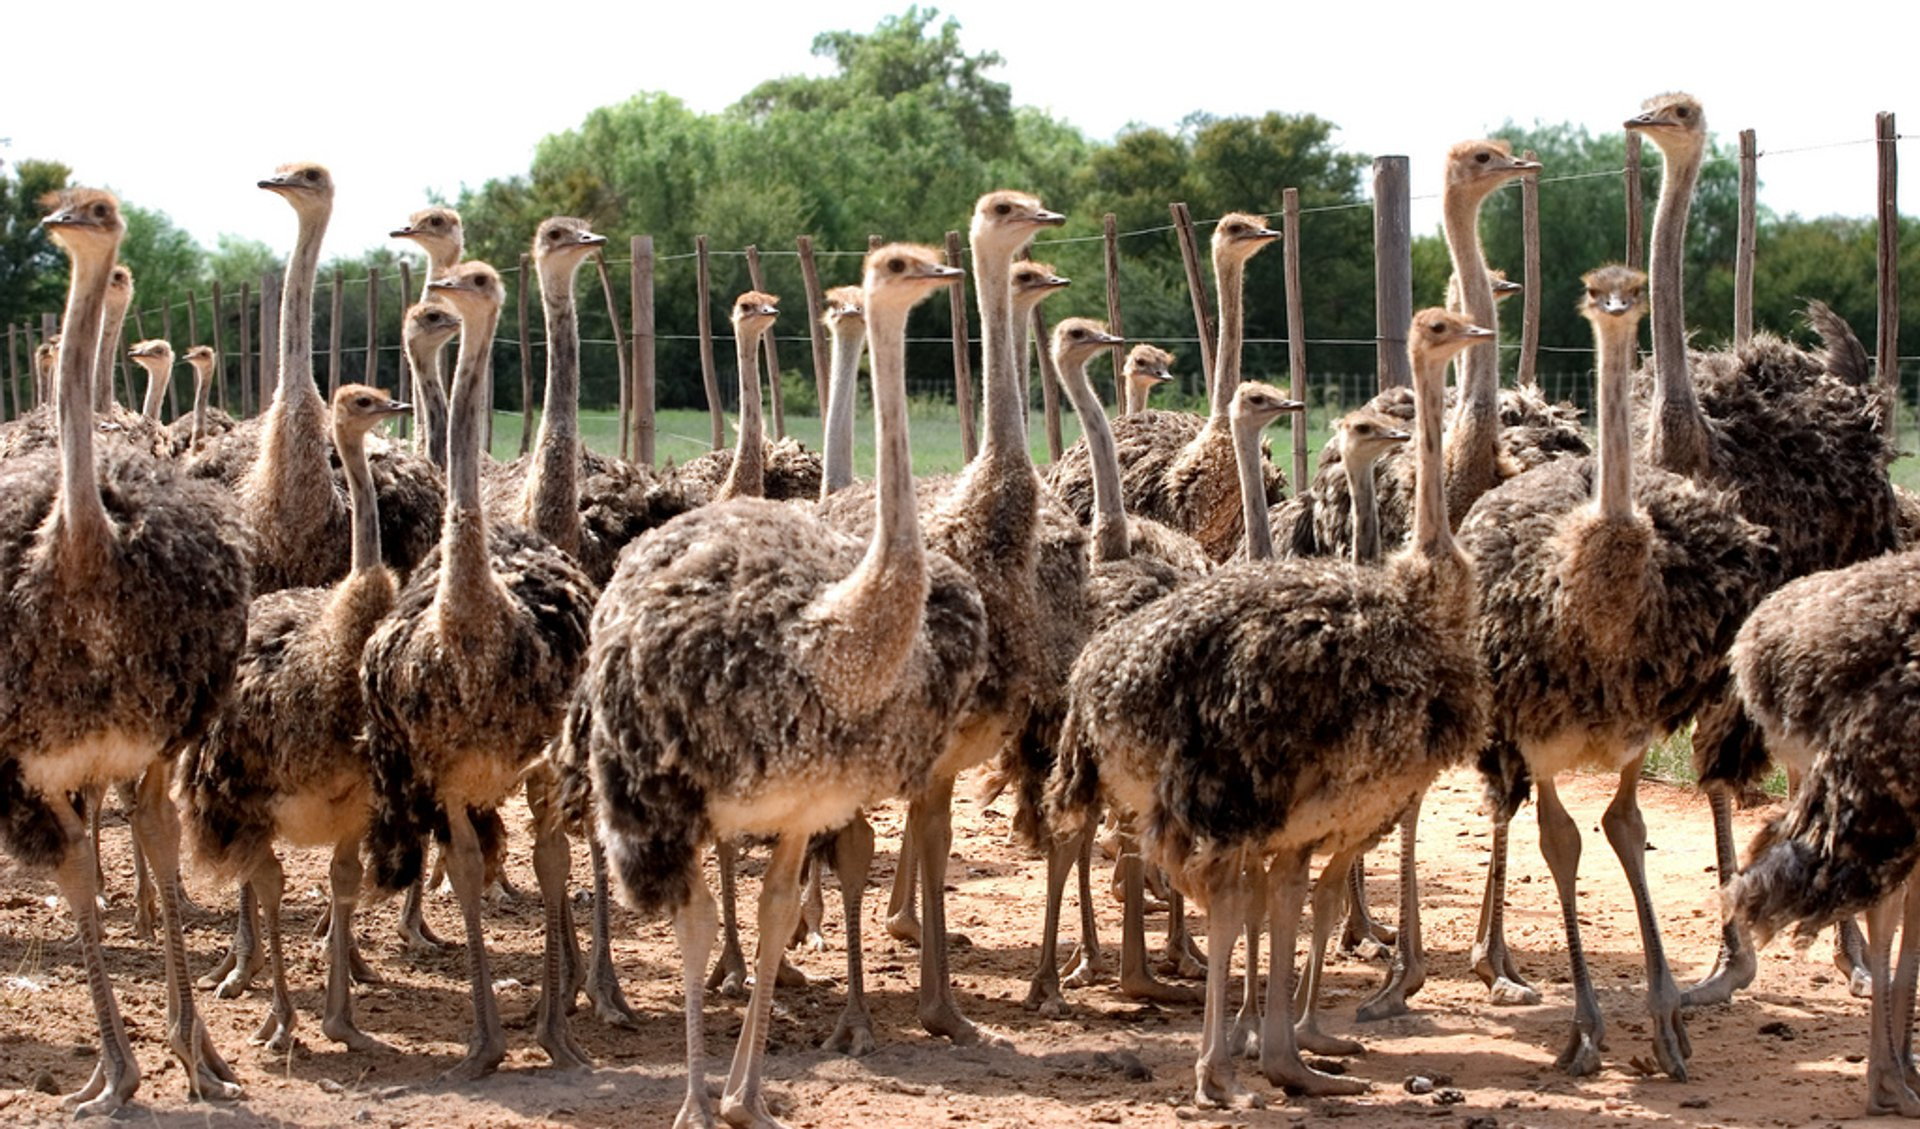 Best time for Oudtshoorn Ostriches in South Africa 2020